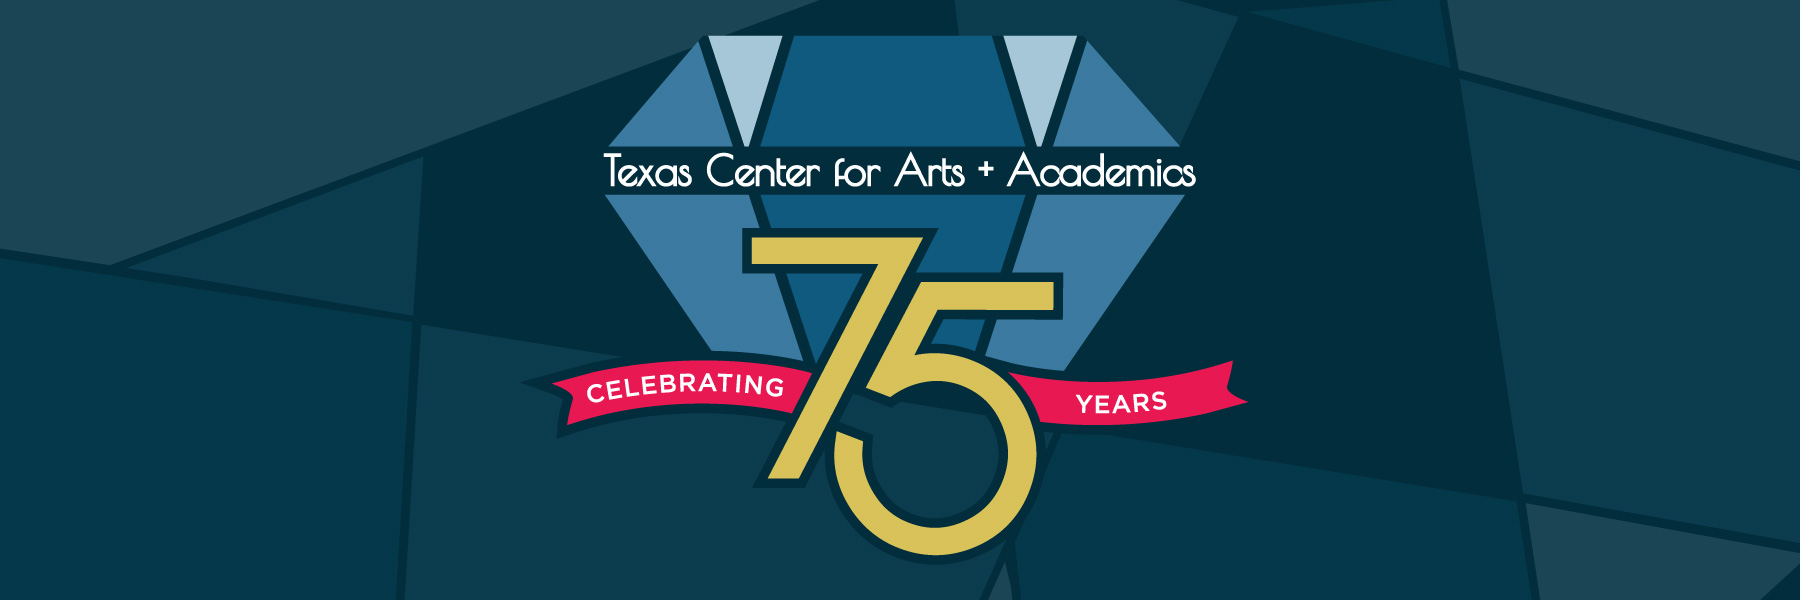 Texas Center for Arts + Academics 75th Anniversary